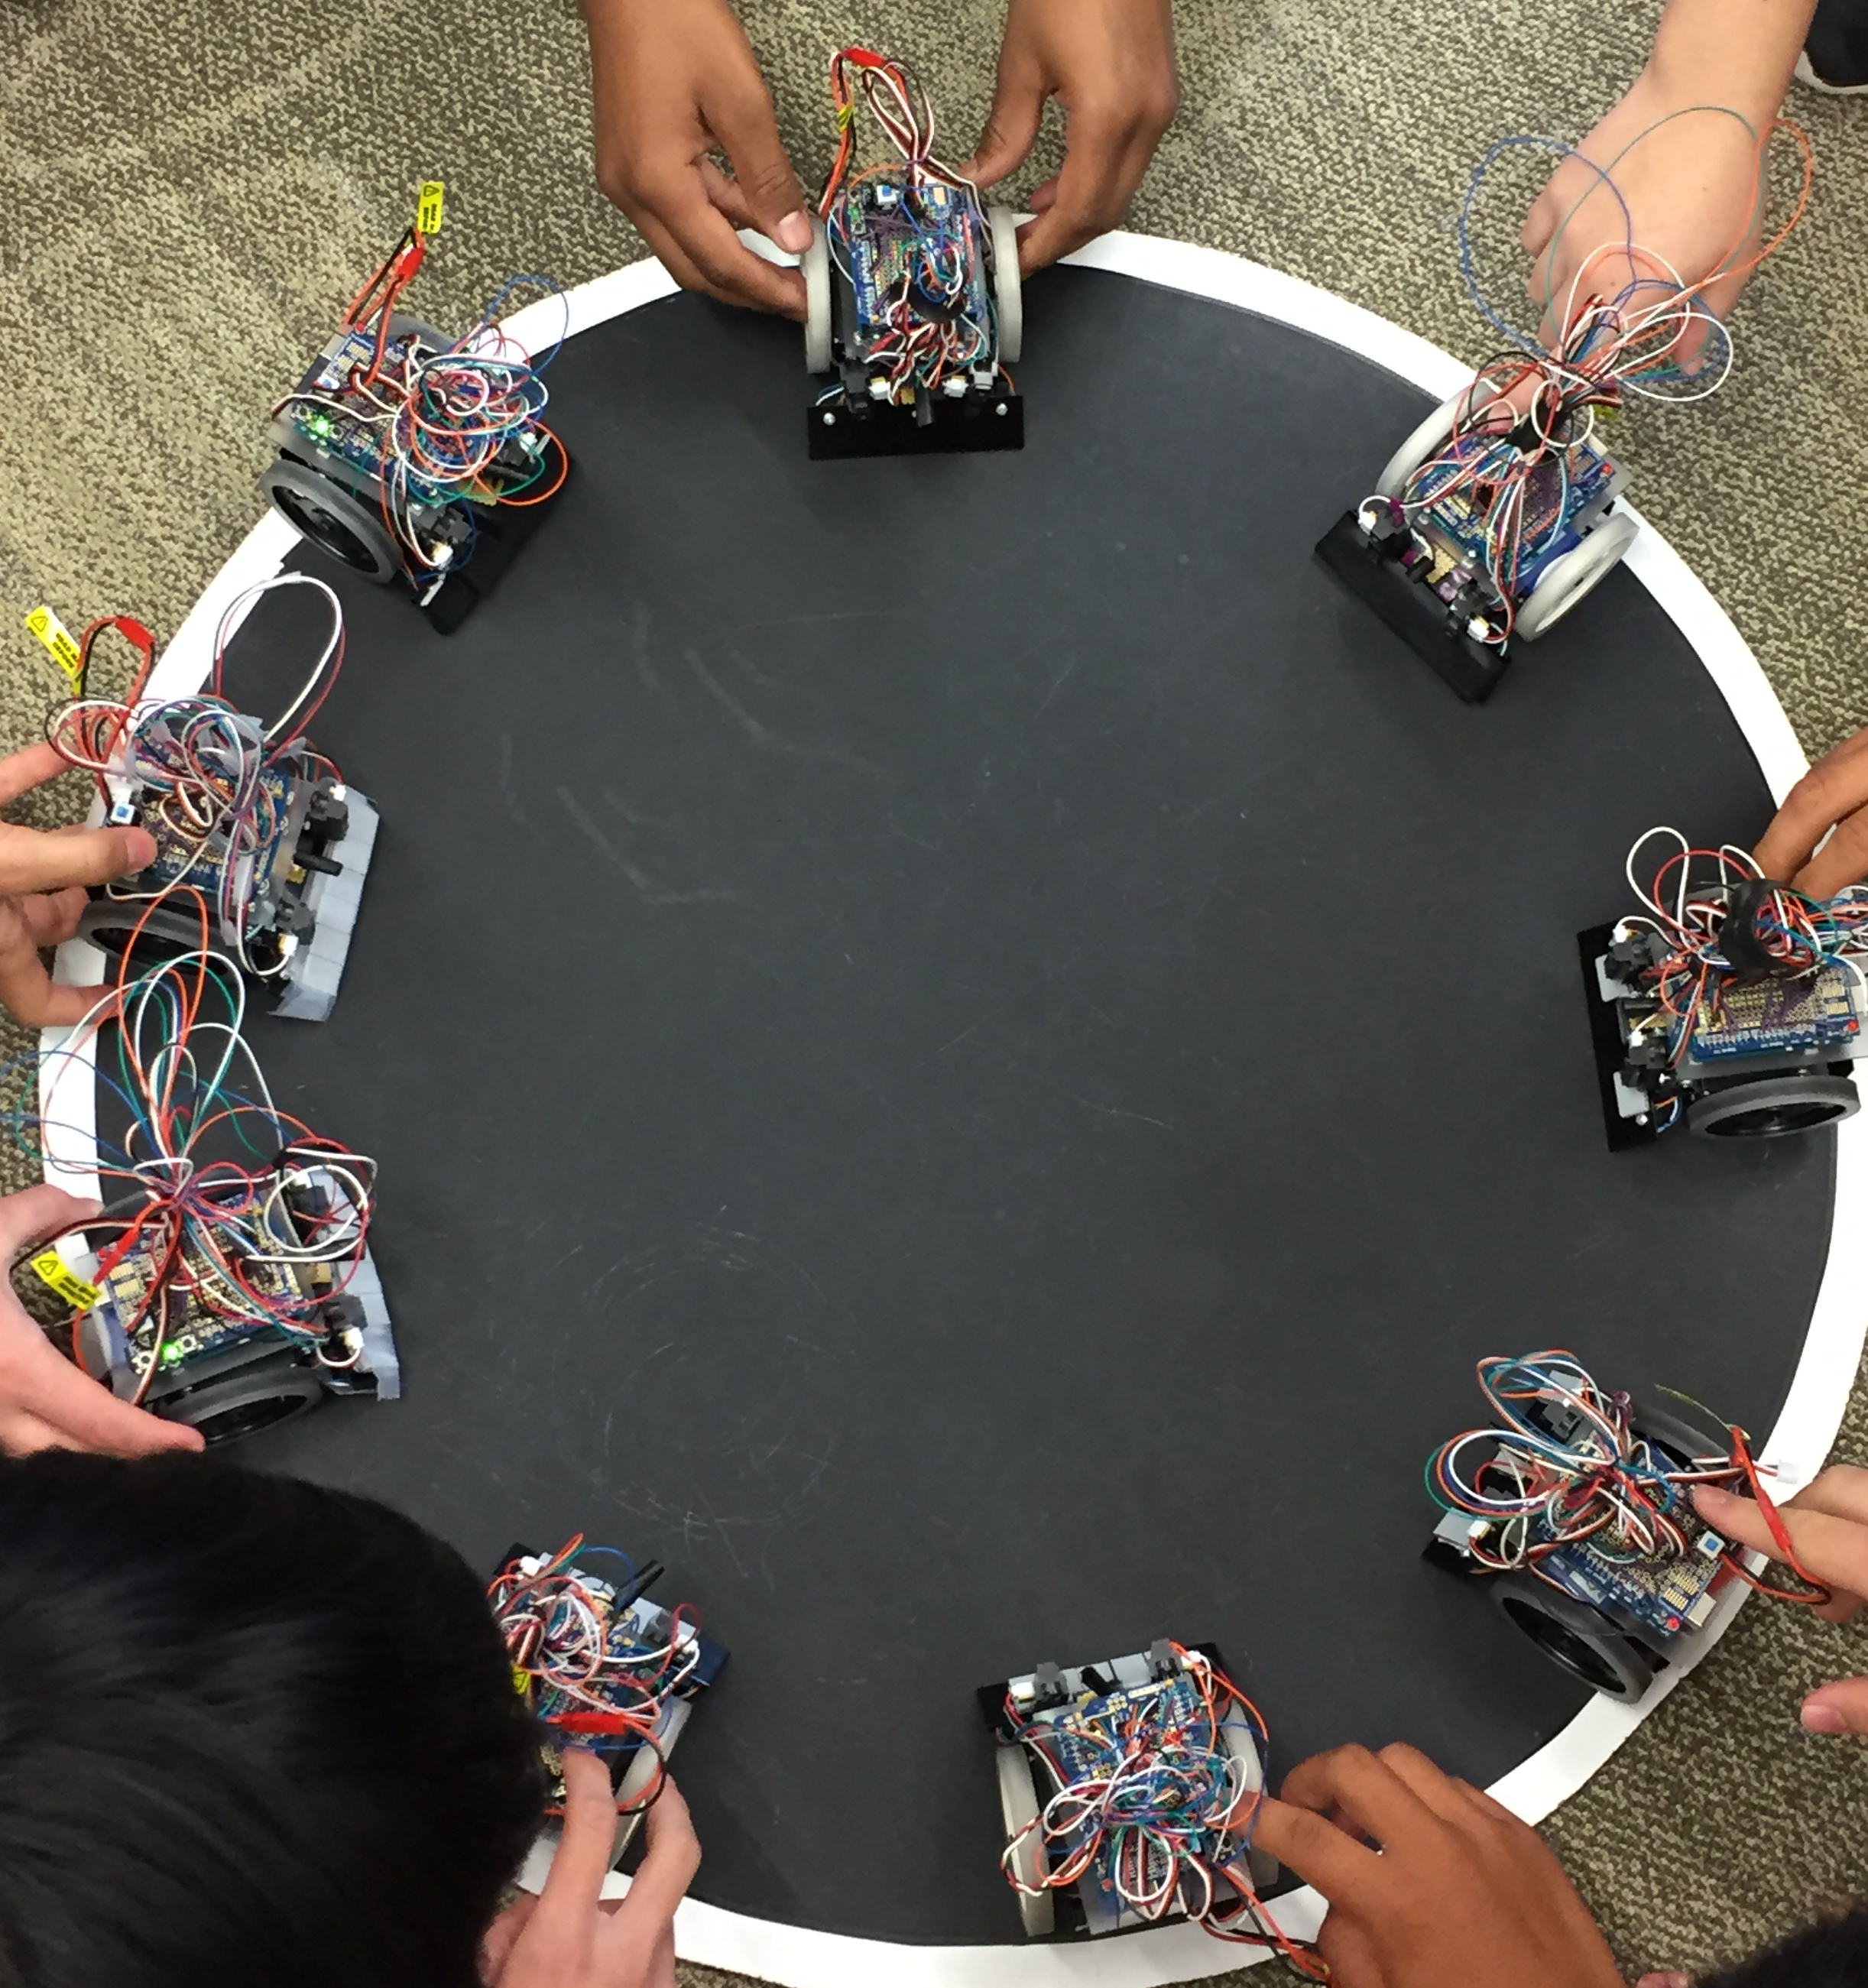 2017 ultimate sumo robots, built in just 1 week, square off in a robot challenge.